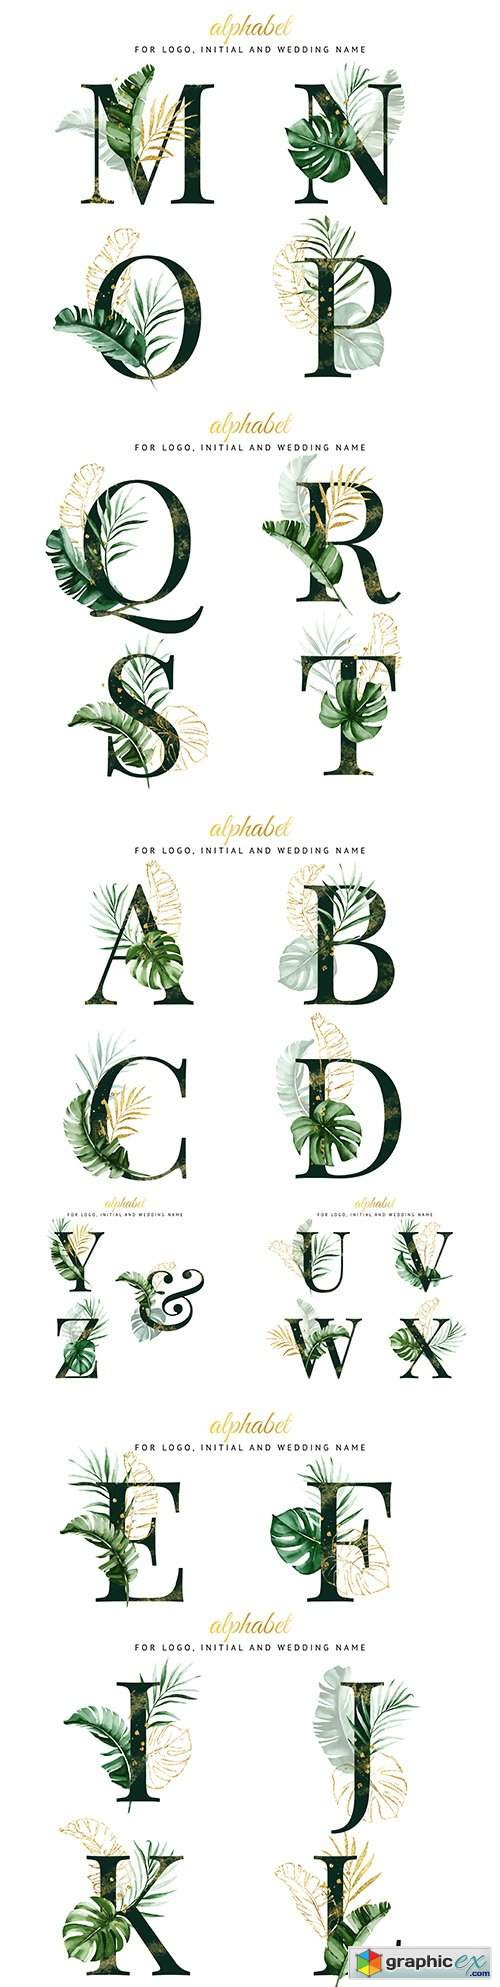 Decorative alphabet with tropical leaves for inviting design